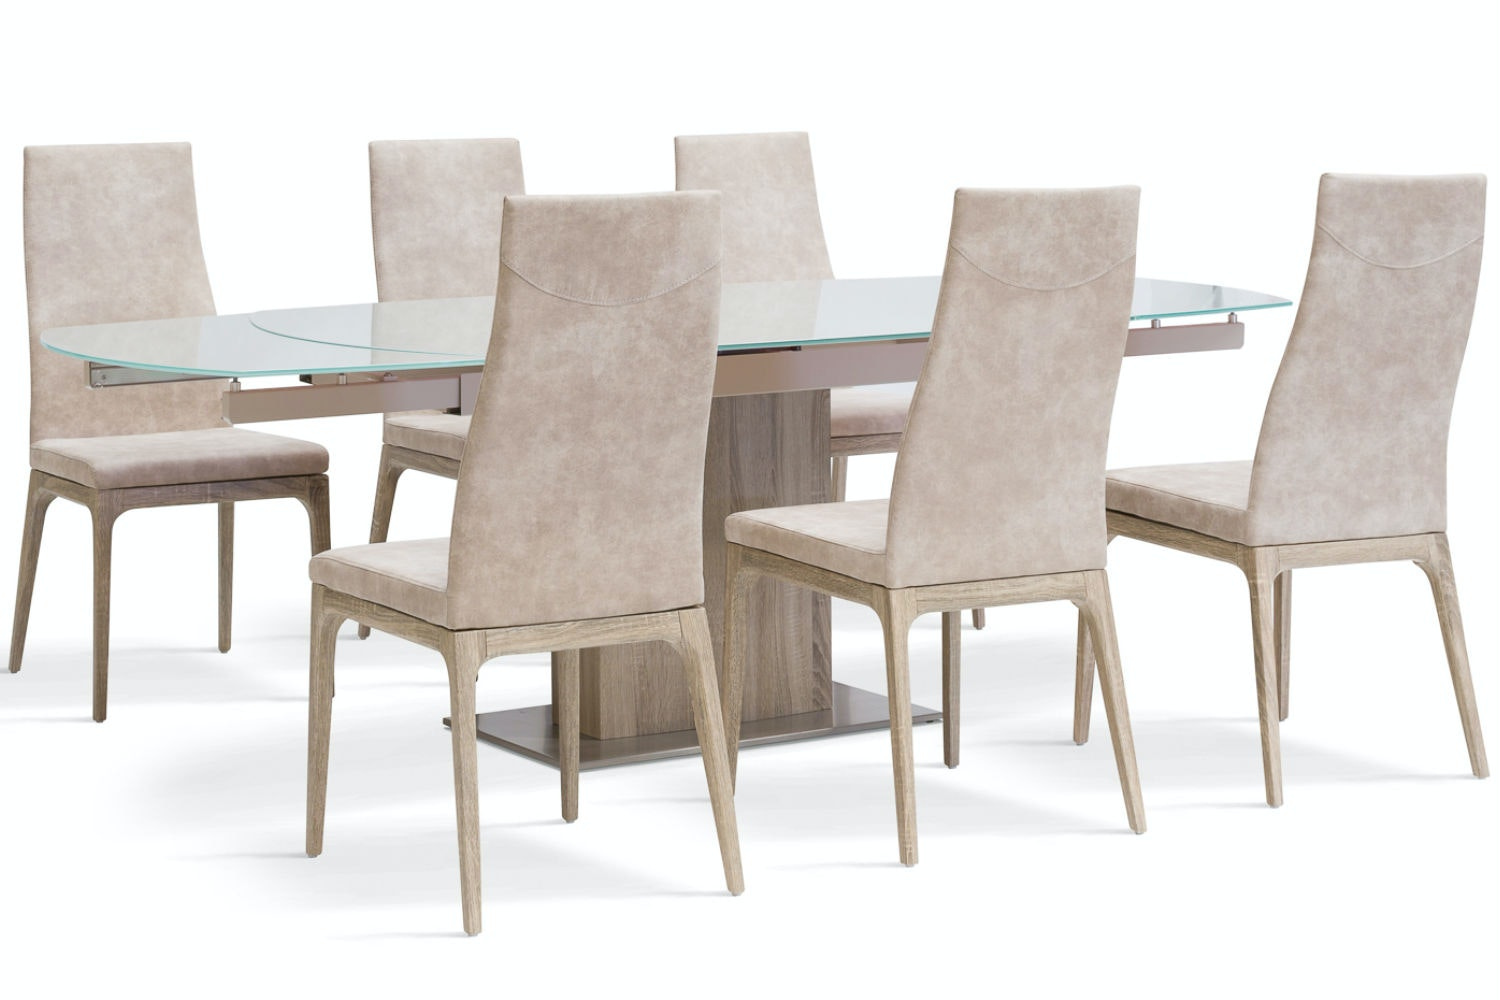 Lucci Light 7-Piece Dining Set | High Calvino Dining Chairs